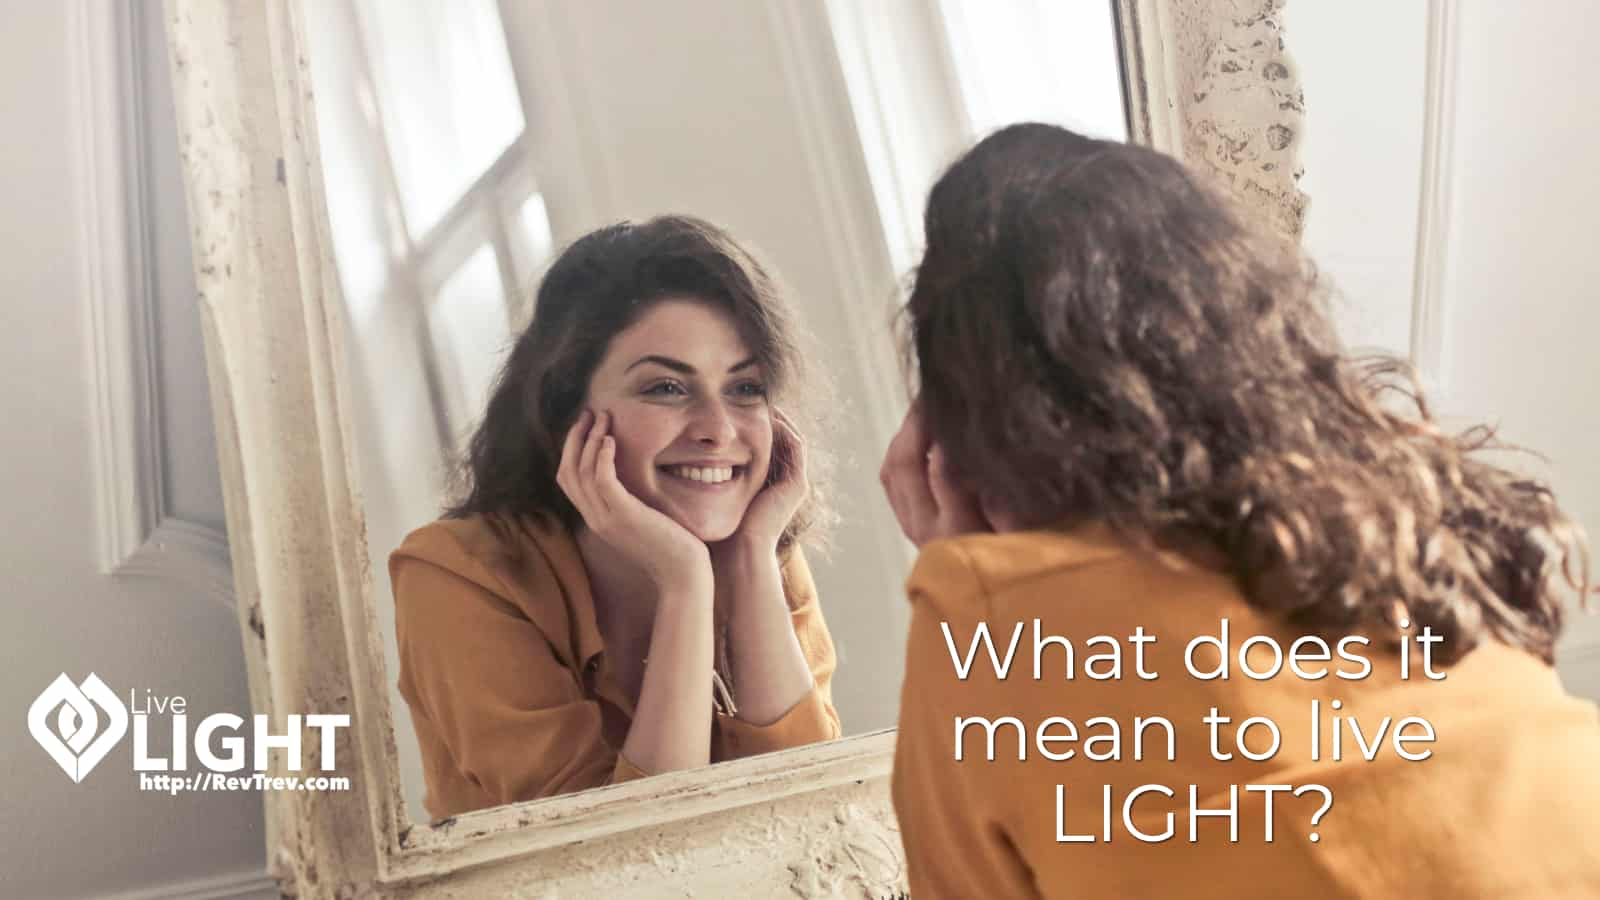 What does it mean to live LIGHT?